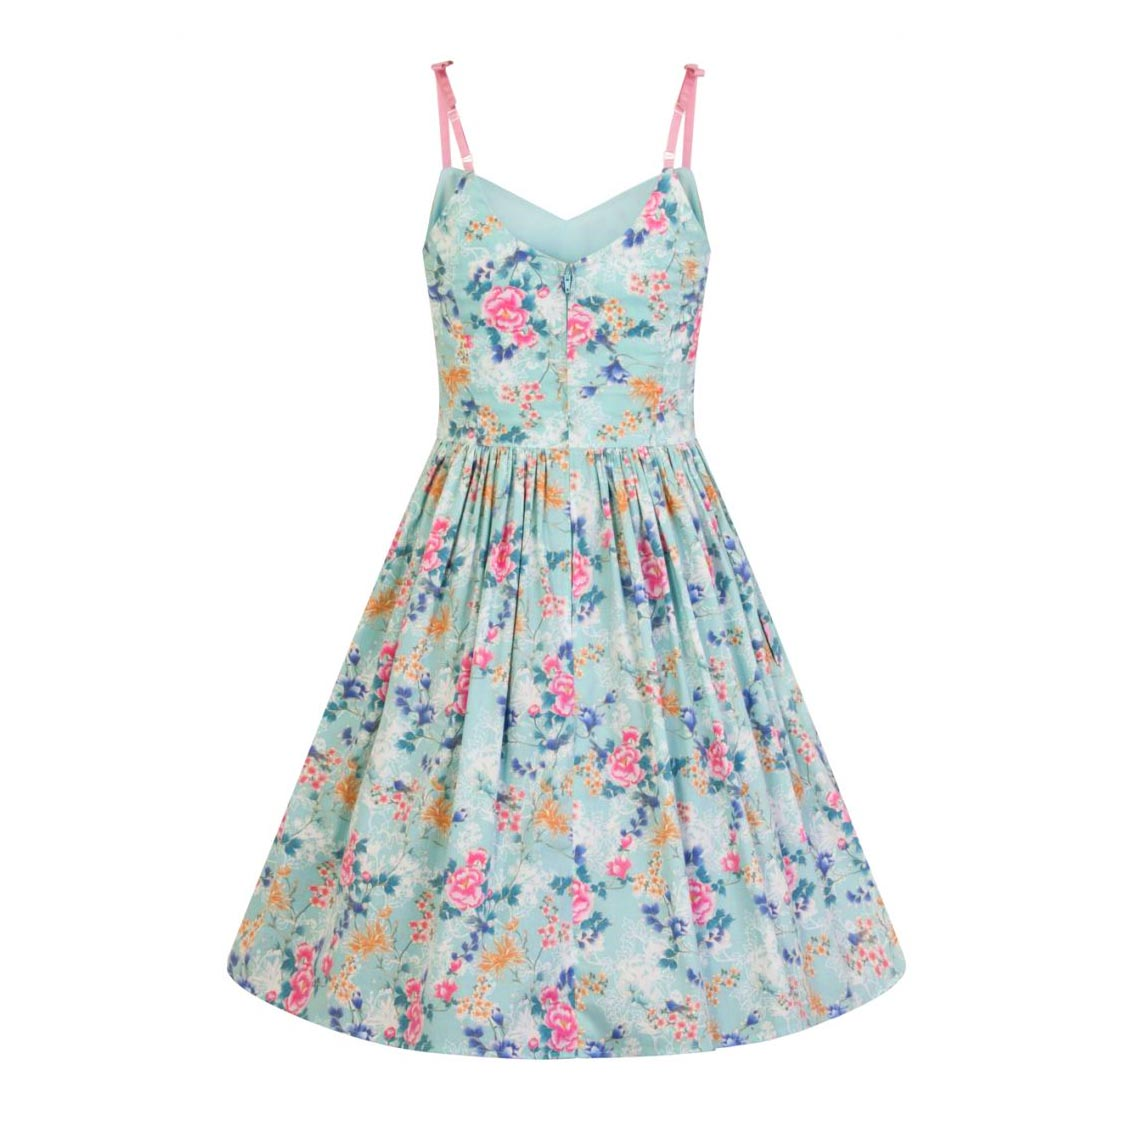 Hell-Bunny-50s-Mid-Length-Dress-Vintage-Blue-Pink-SAKURA-Flowers-Roses-All-Sizes thumbnail 15